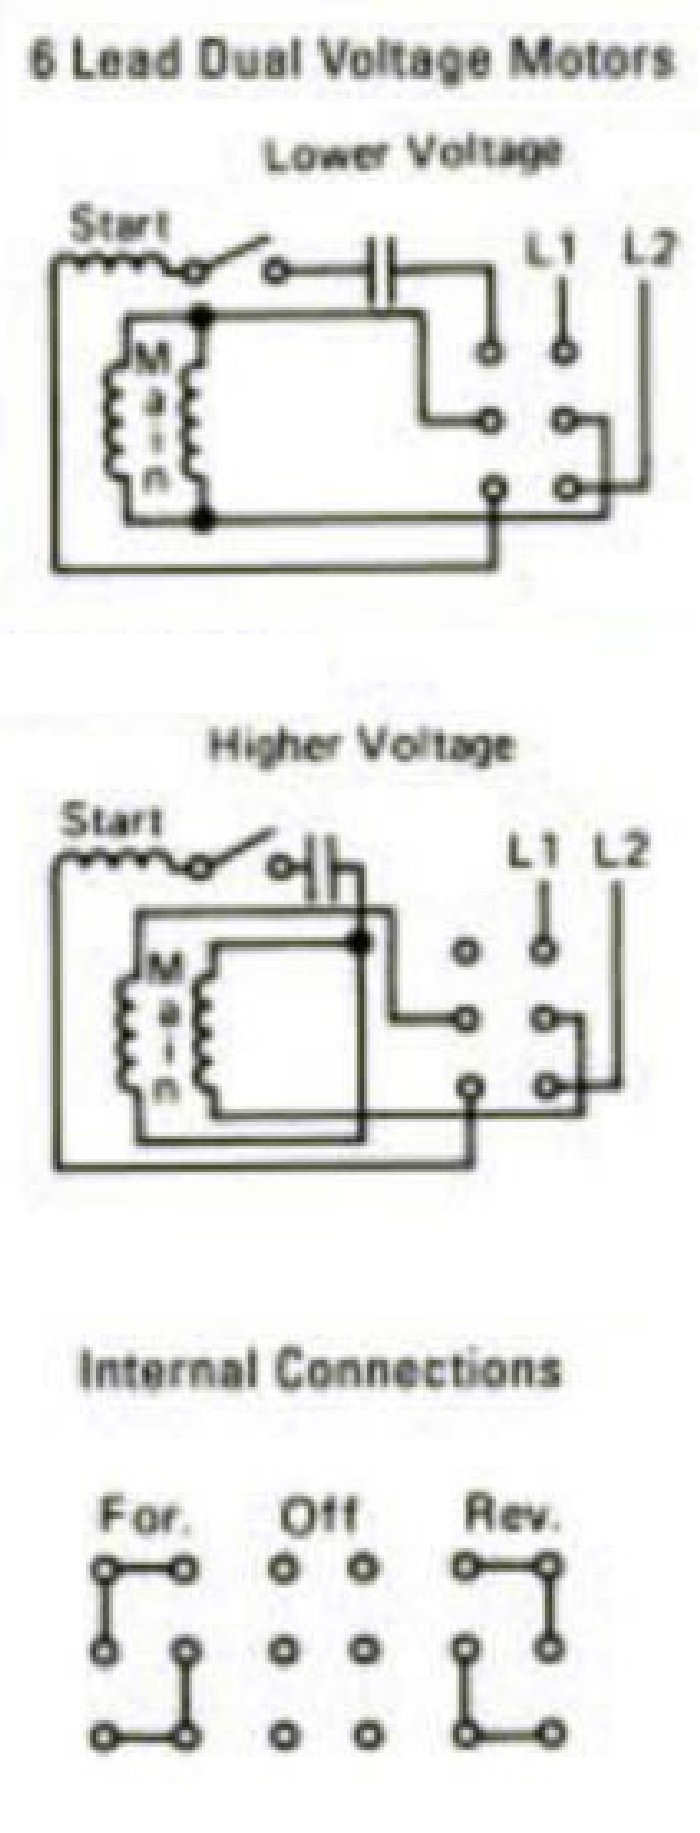 6 lead drum sw wiring boat lift switch wiring need help the hull truth boating and boat lift switch wiring diagram at bayanpartner.co